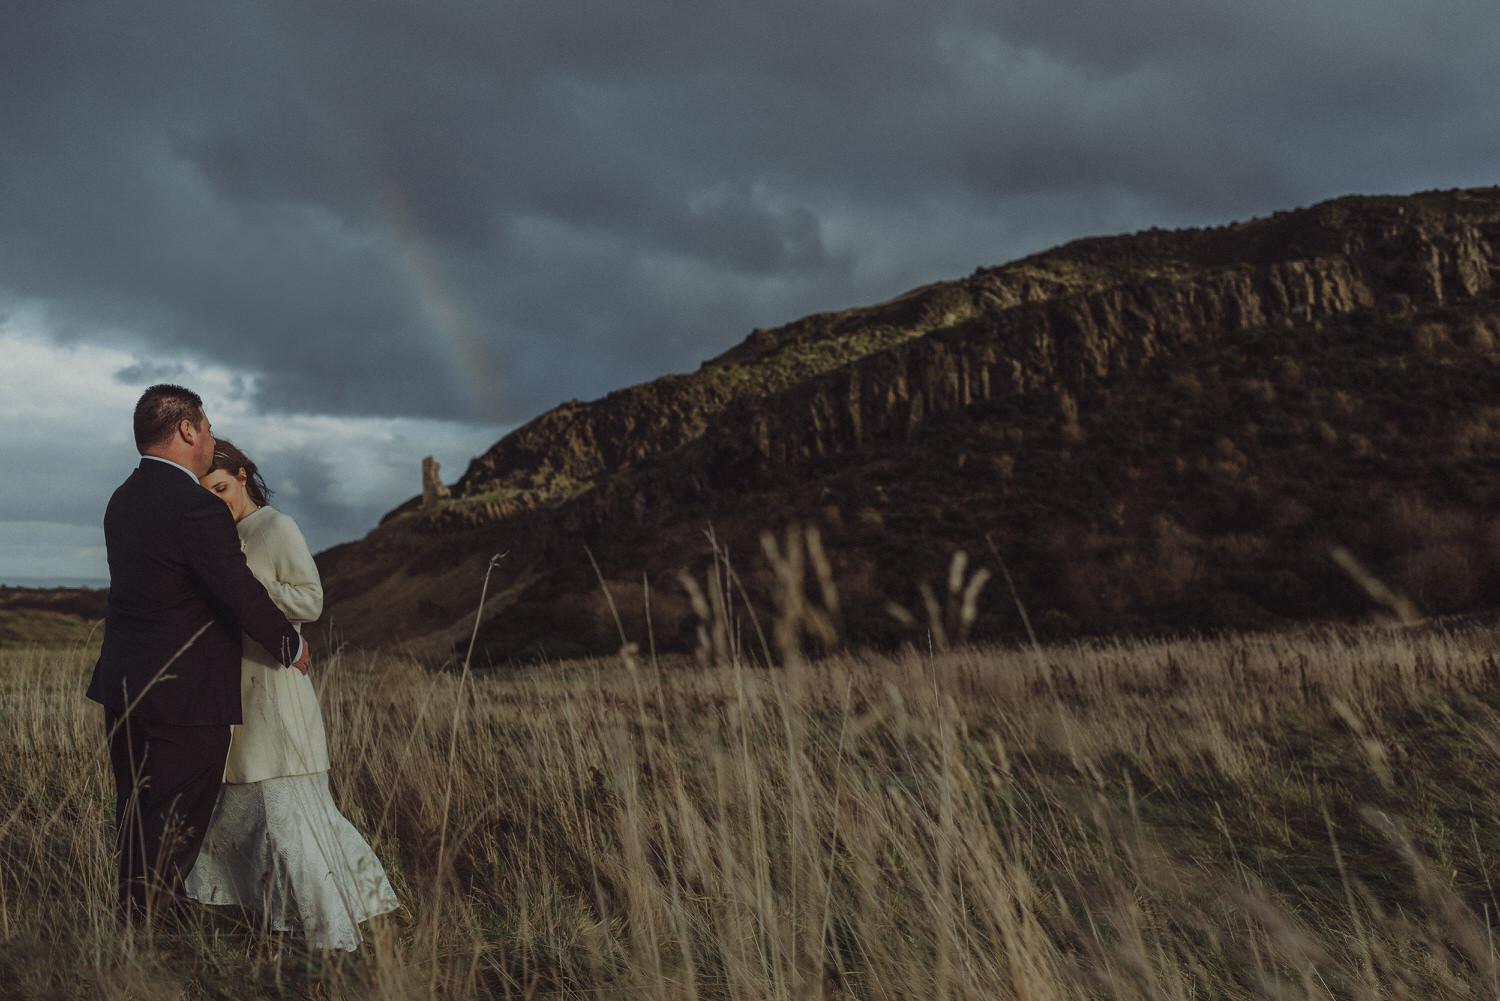 Andrew & Joanne's elopement at the Robin Chapel and Holyrood Park - Edinburgh, 17th December 2015